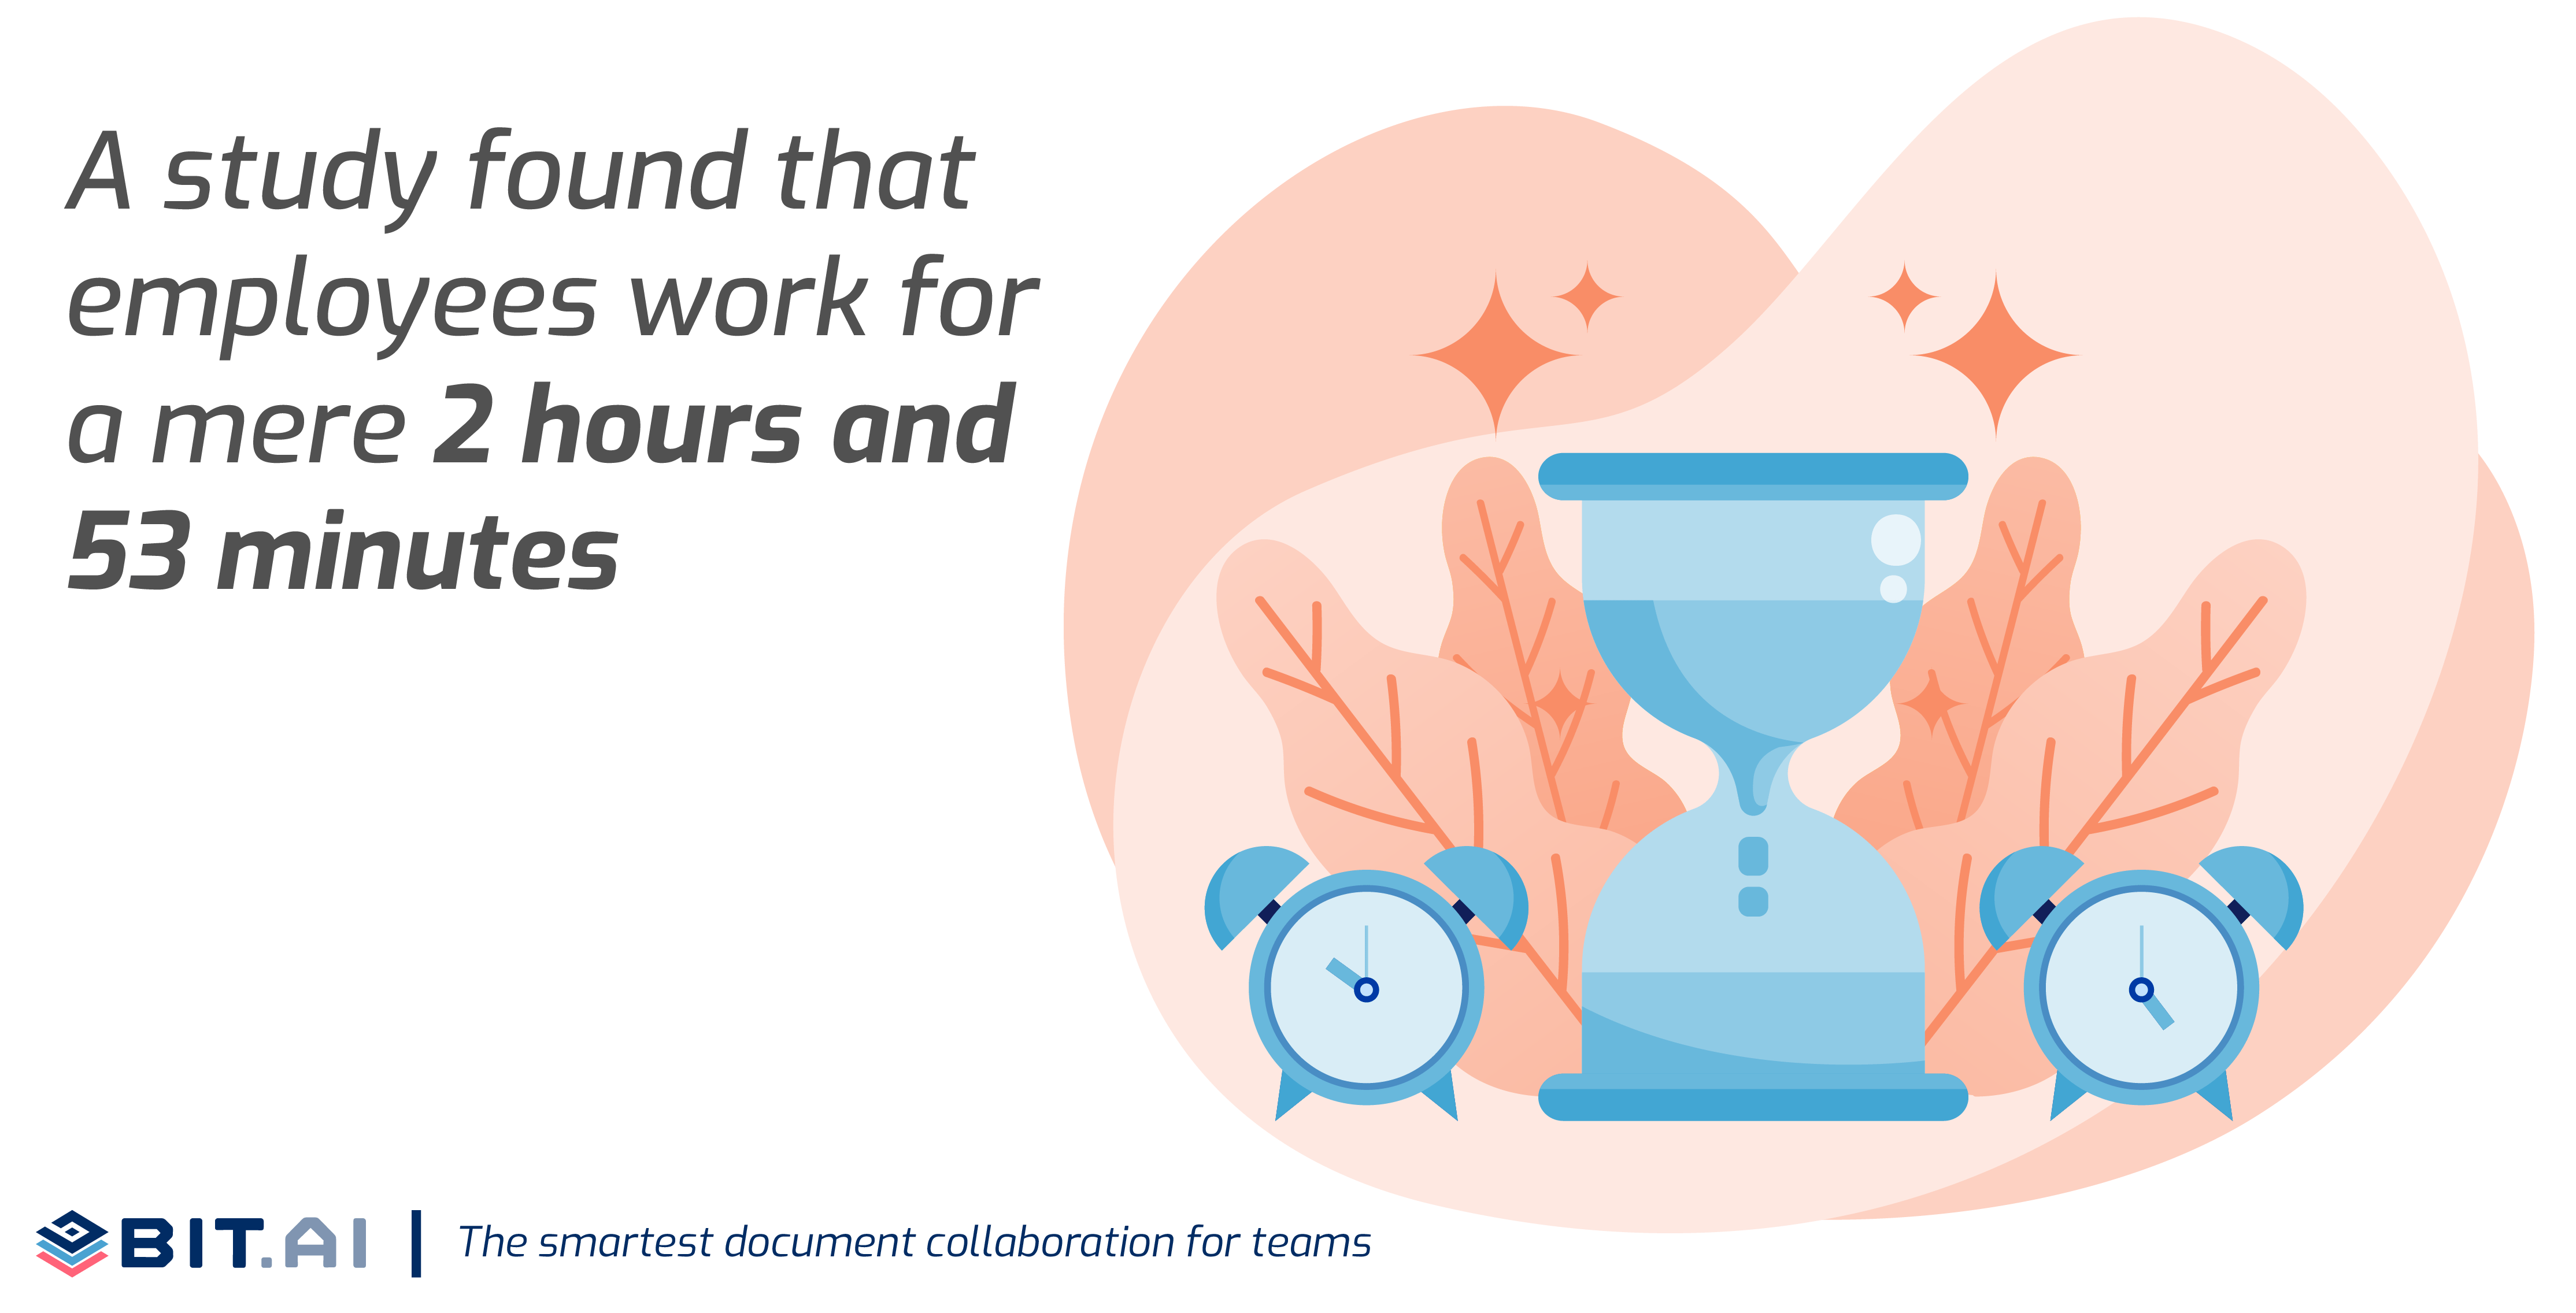 Statistic illustration related to total productive working hours of an employee in a day